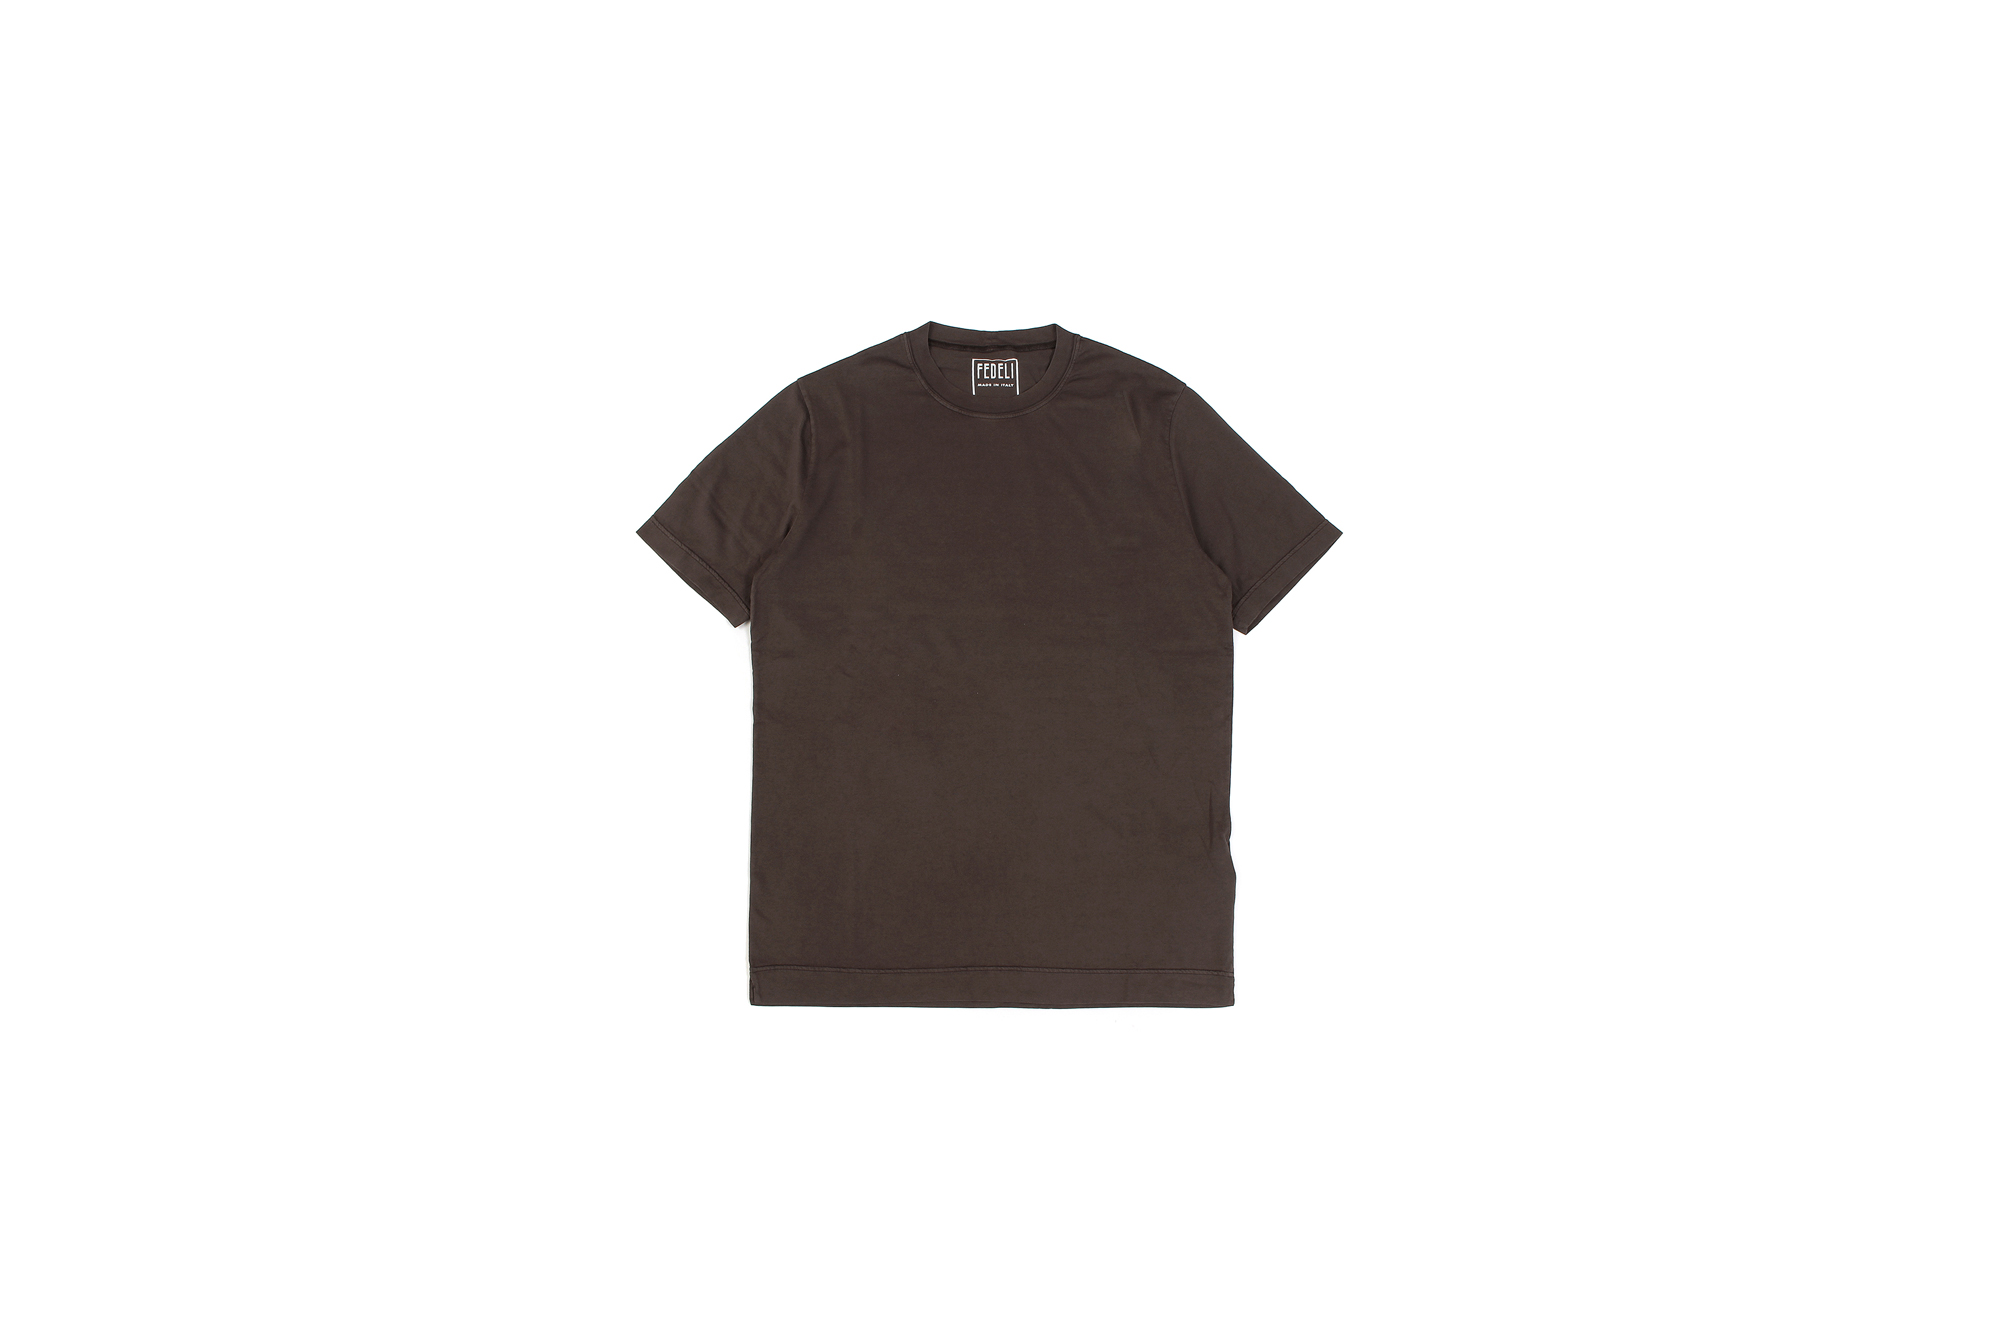 FEDELI(フェデーリ) Crew Neck T-shirt (クルーネック Tシャツ) ギザコットン Tシャツ BROWN (ブラウン・811) made in italy (イタリア製) 2020 春夏 【ご予約開始】愛知 名古屋 altoediritto アルトエデリット TEE